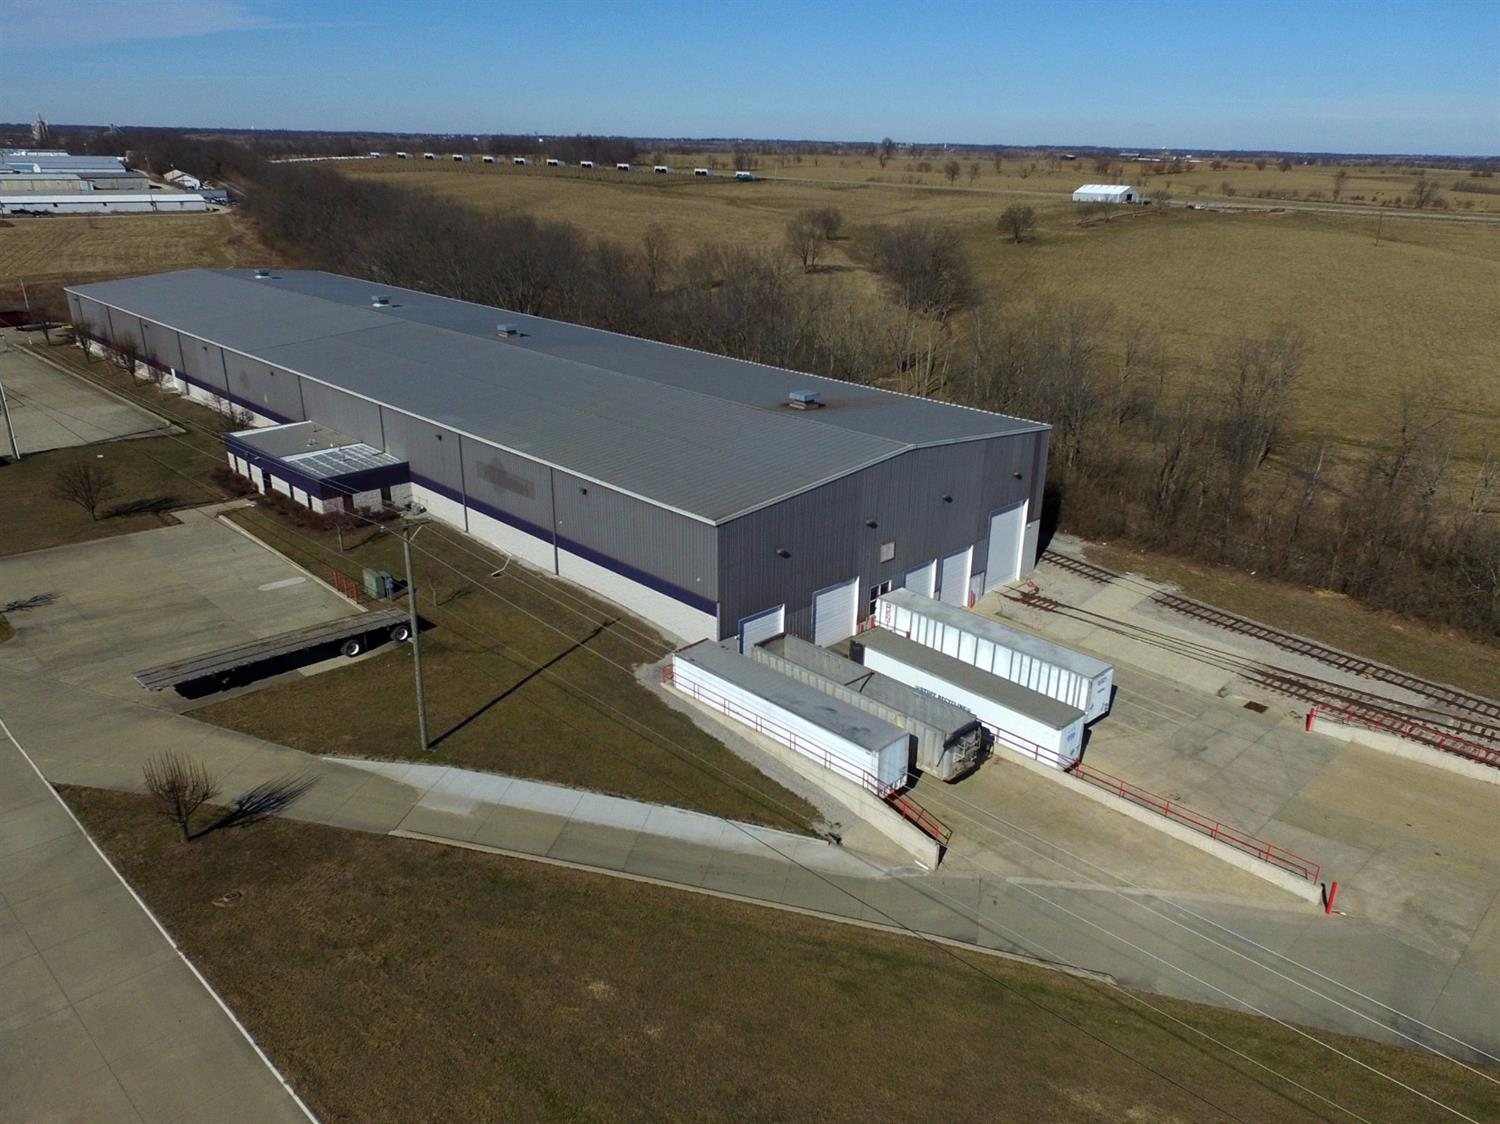 47,610%20SF%20facility%20on%204.6%20acres%20located%201%20mile%20from%20I-64.%20%20This%20building%20has%20two%2030-ton%20cranes%20with%20100%20ft%20clear%20span,%2029%20ft%20ceiling%20clearance%20and%20active%20rail%20spur%20that%20enters%20and%20exits%20the%20building%20through%20the%20back.%20%203%20dock%20level%20doors%20and%201%20drive-in%20door.%20%20For%20sale%20at%20$4,600,000%20or%20can%20be%20leased%20for%20$40,000%20per%20month